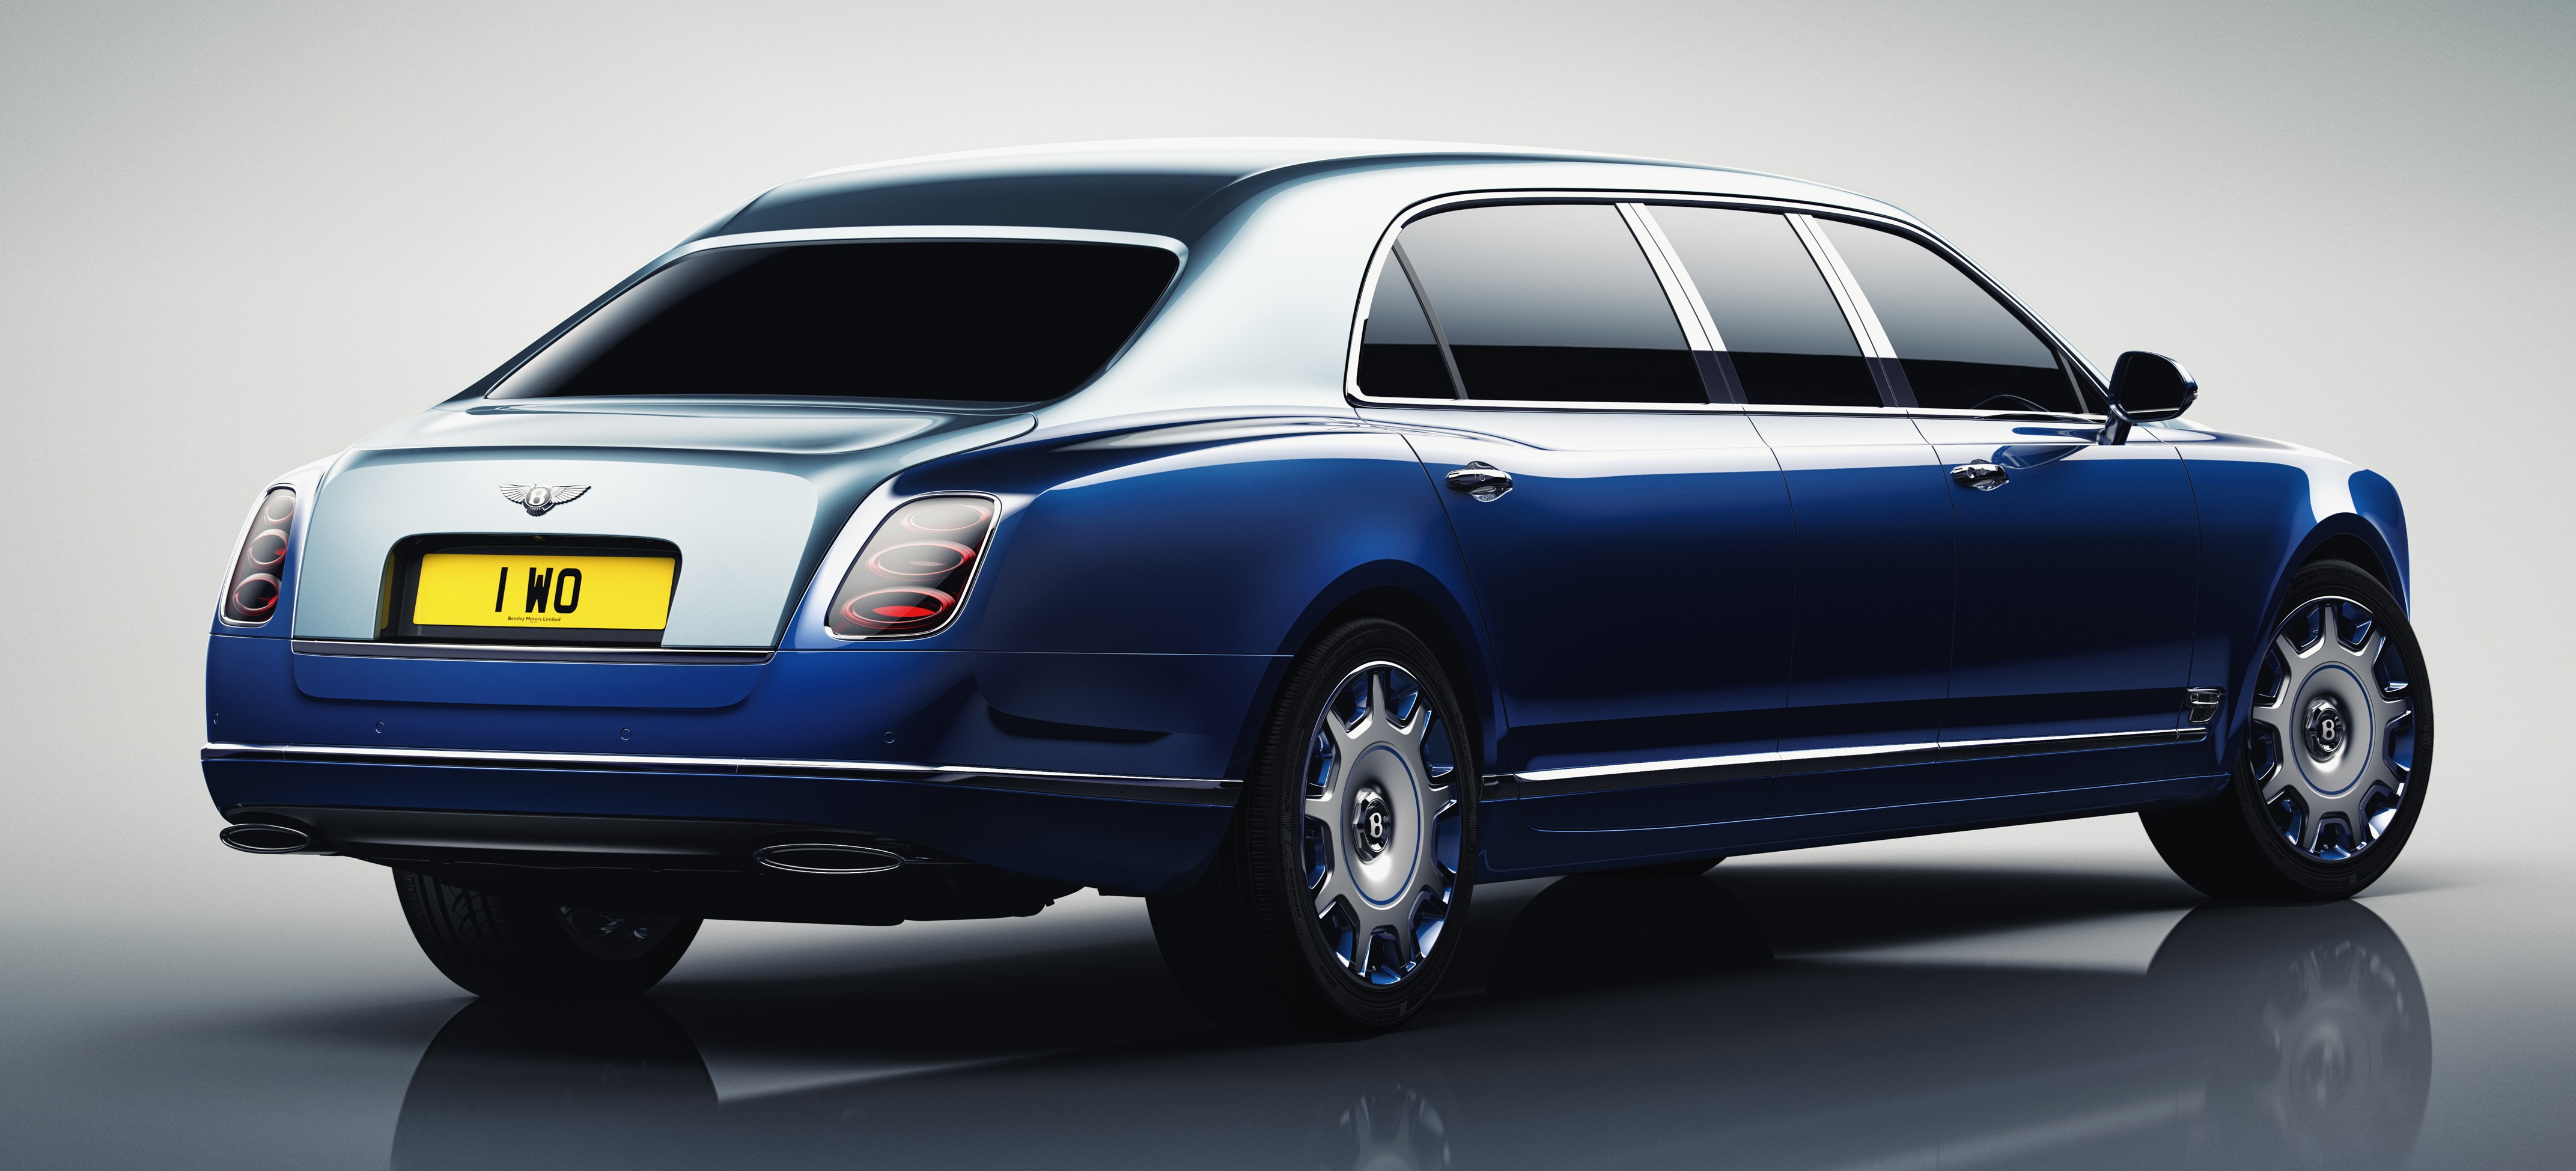 bentley mulsanne limousine with Xlwb Rear3qrtr Whitebg Rgb on Shanghai 2013 Armoured Bentley Mulssane Limousine By Carat likewise Les Rappeurs Et Leur Voiture further 17 additionally Lamborghini Diamant C3 A9 together with 05.